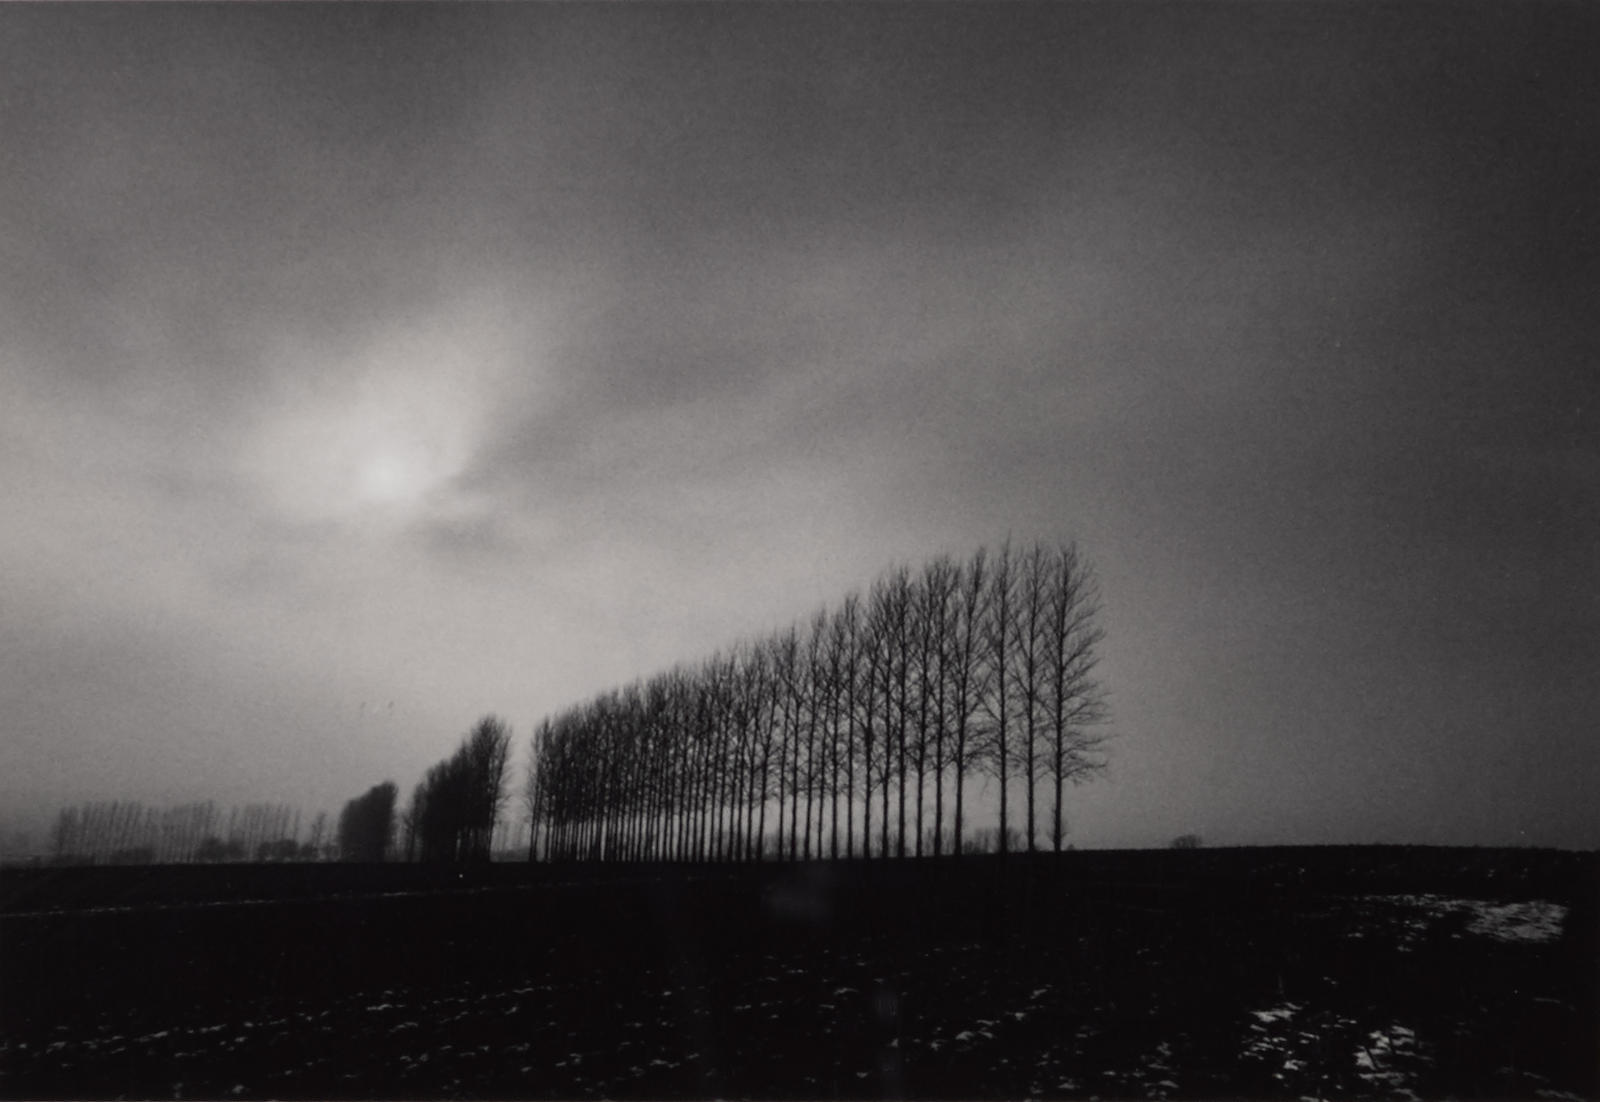 Michael Kenna-Winter Trees, Oxfordshire, England-1984